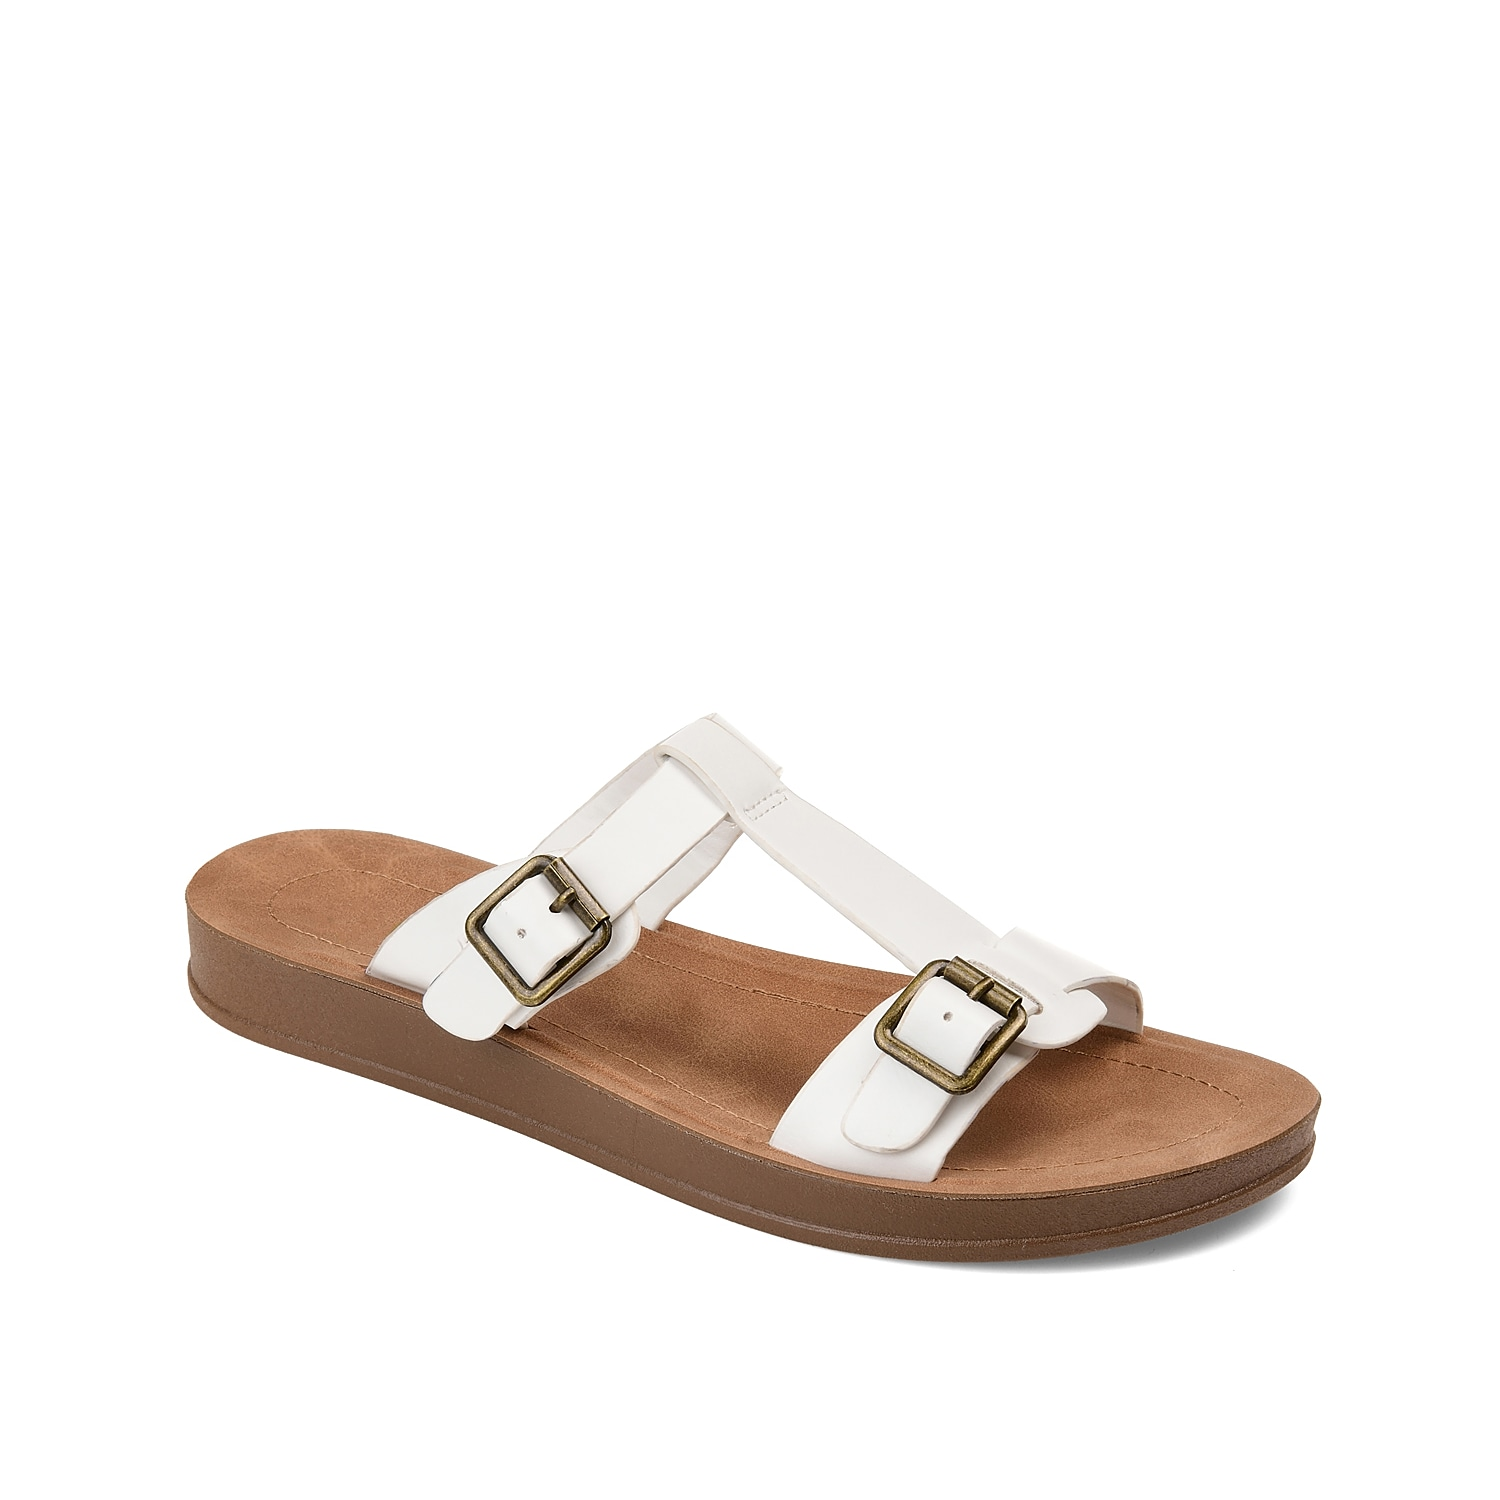 Step up your casual style with the Alice sandal from Journee Collection. Decorative buckles and a sporty T-strap make this flat sandal an everyday favorite with sundresses or shorts.